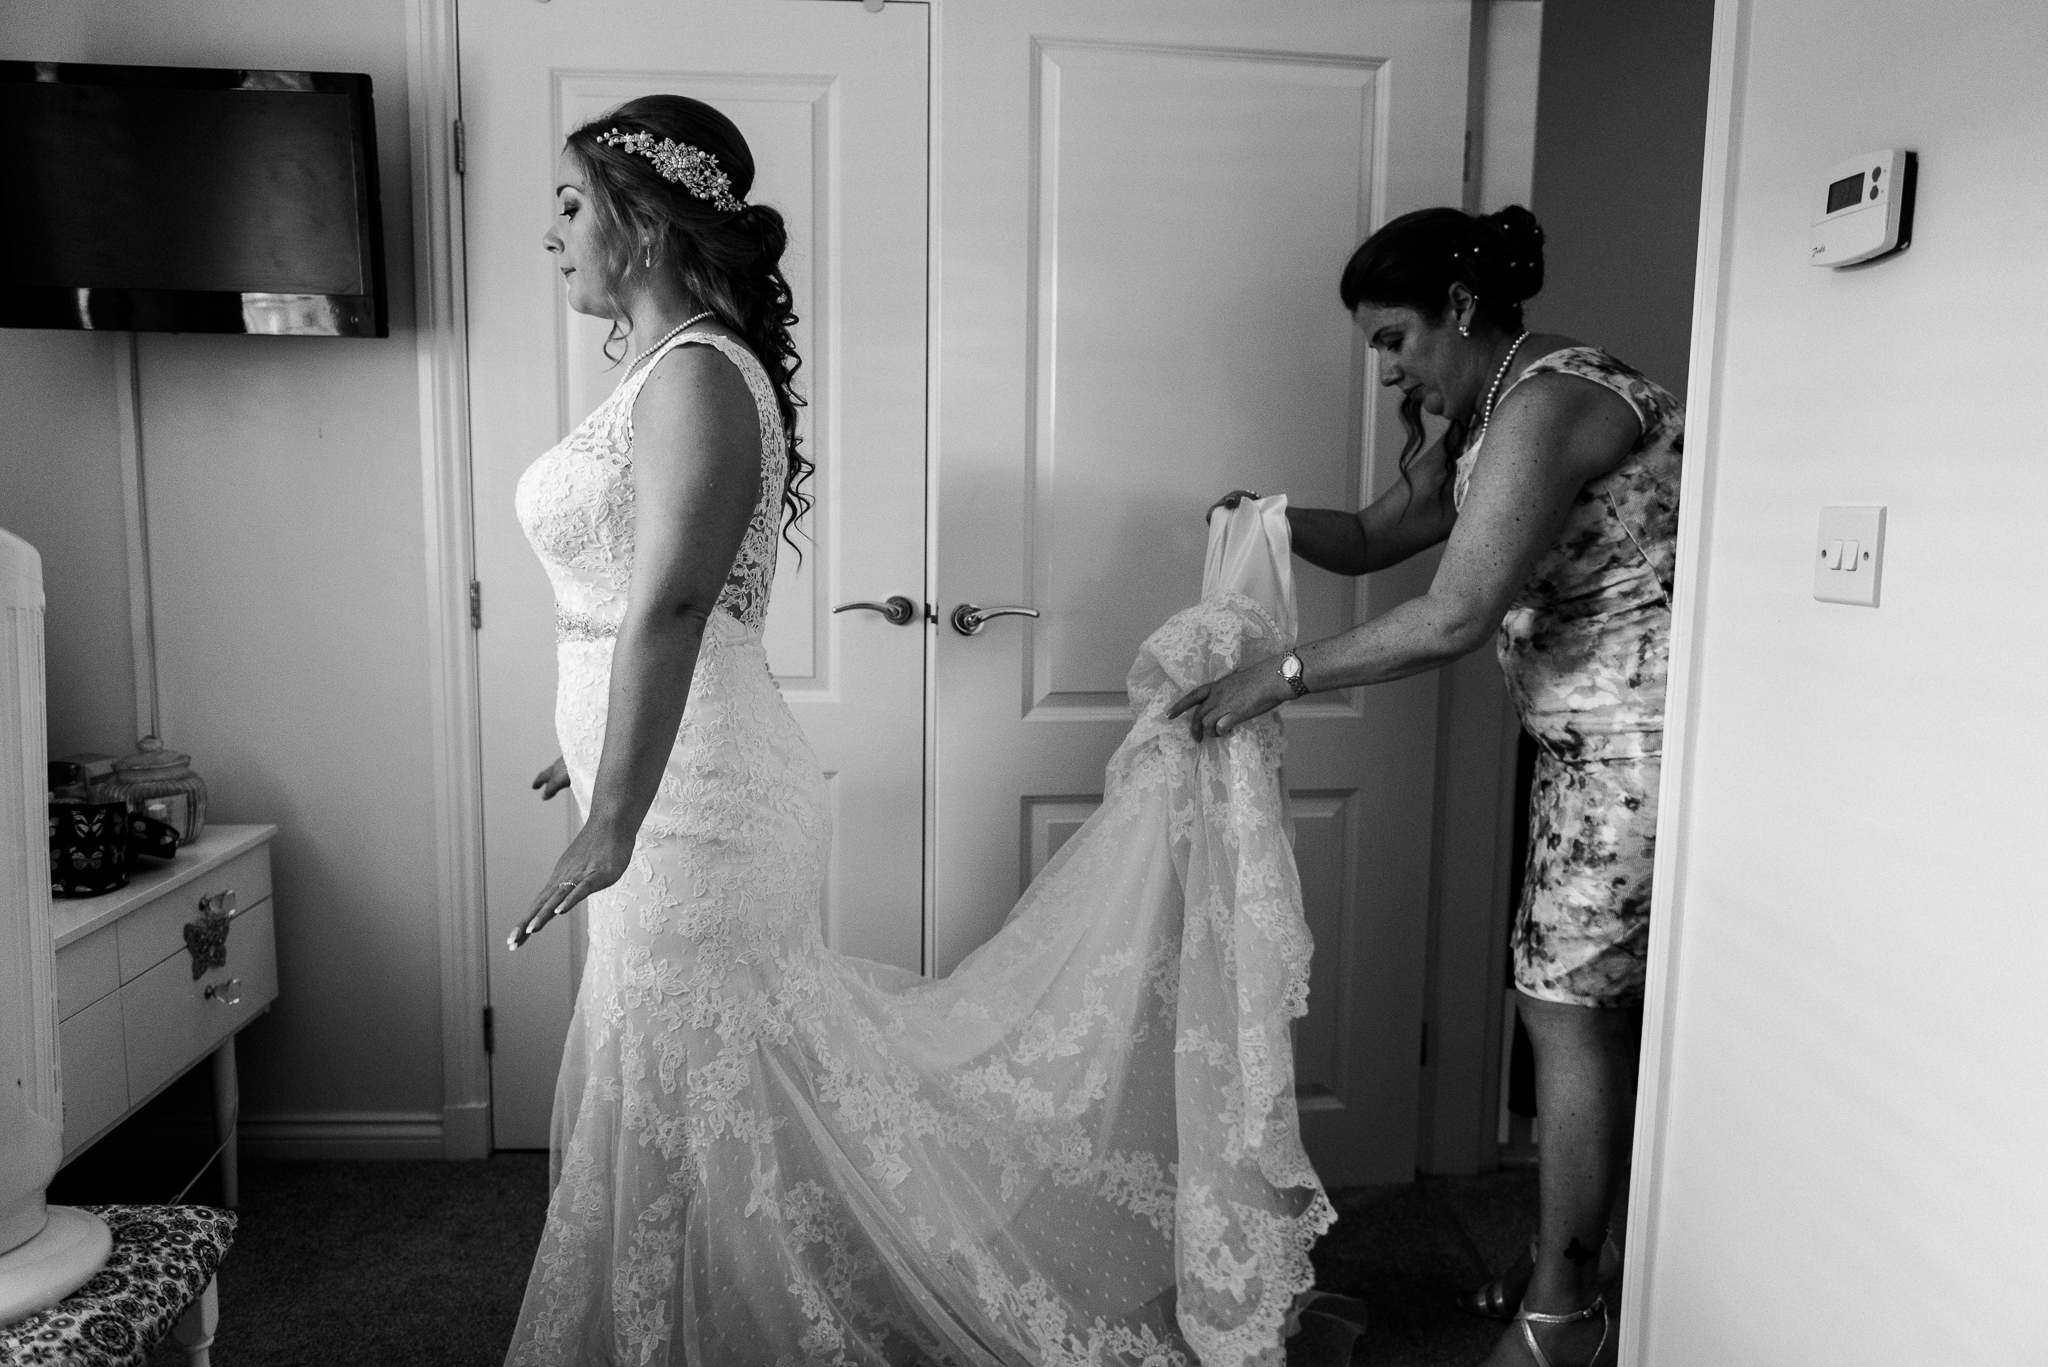 Summer Wedding Photography at Slater's Country Inn Staffordshire Colourful Pastels - Jenny Harper-15.jpg